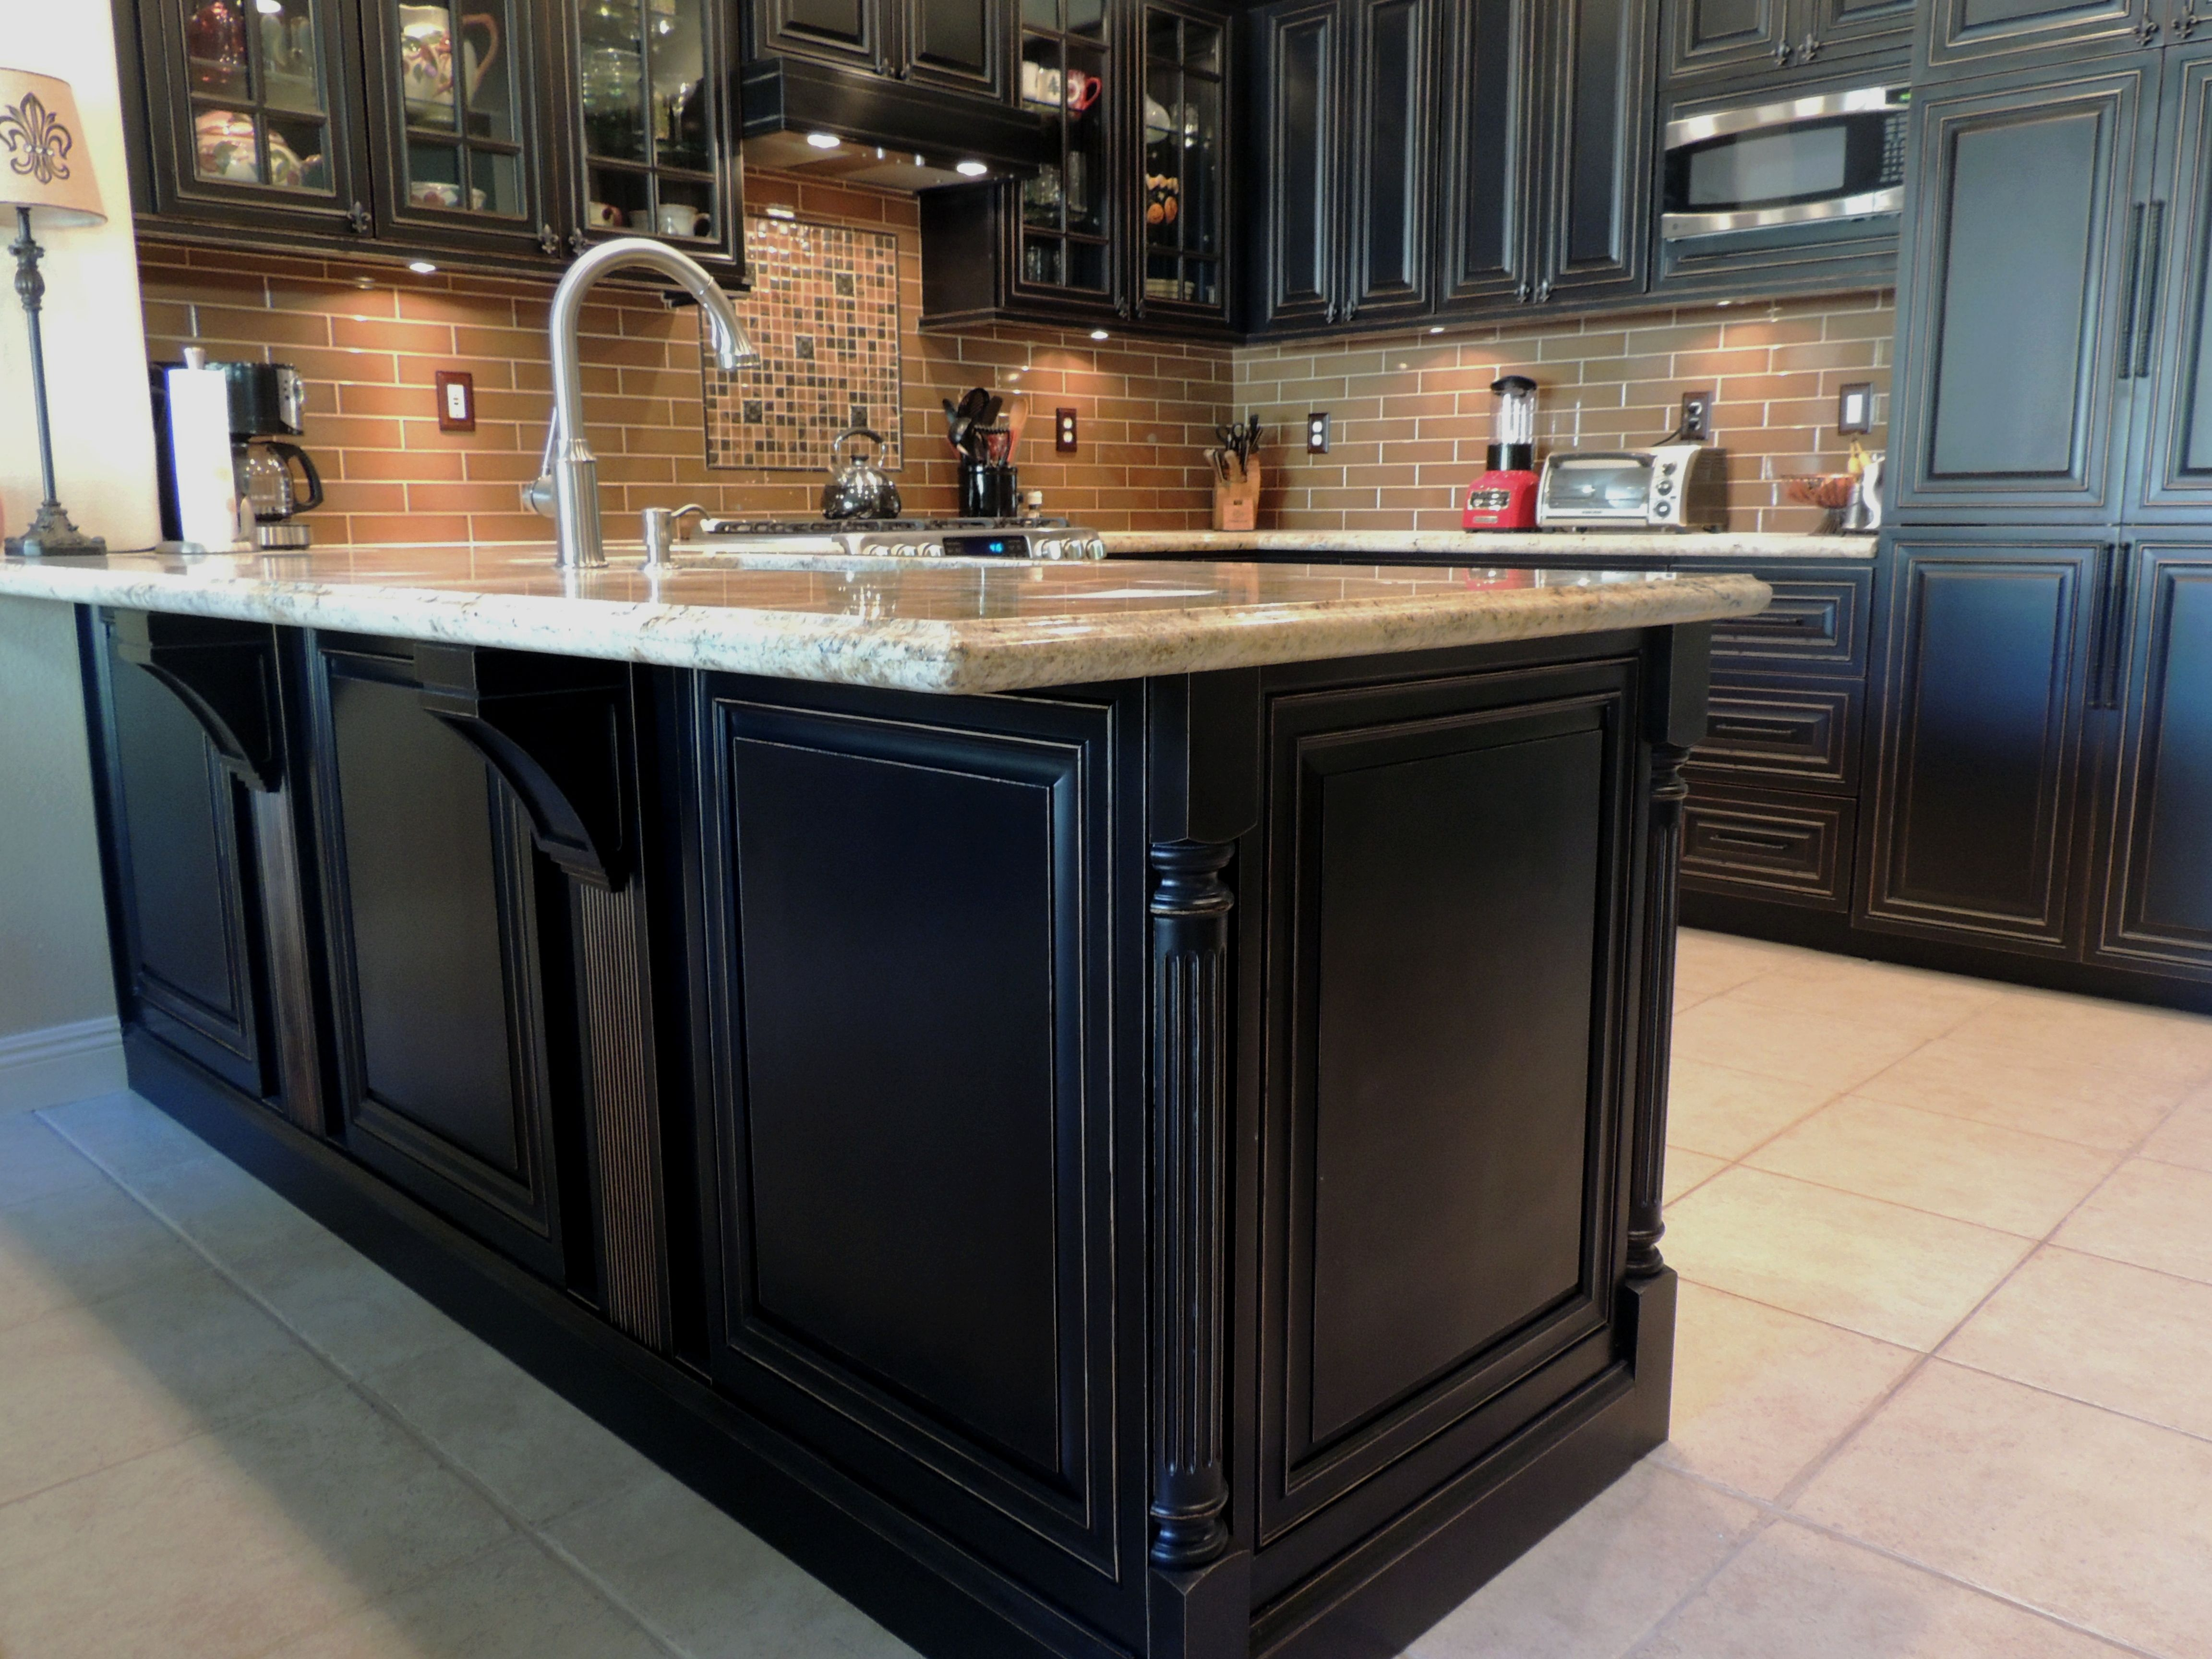 Close Up Look At Finished O Neil Vintage Peninsula The Corbels Add A Nice Touch Kitchen Cabinets Black Vintage Peninsul Home Remodeling House Cabinetry